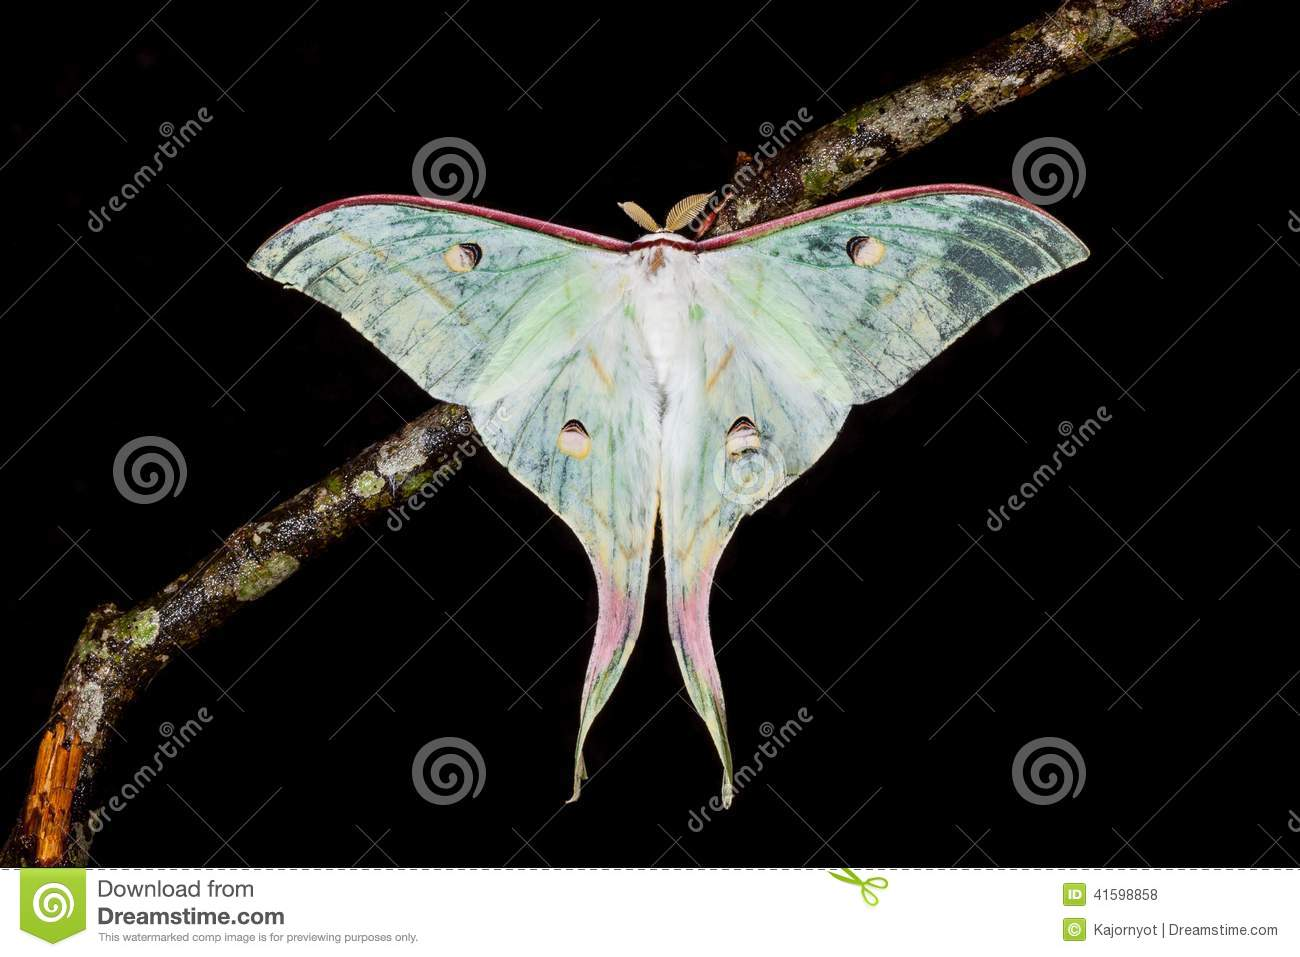 The Indian Moon Moth moth